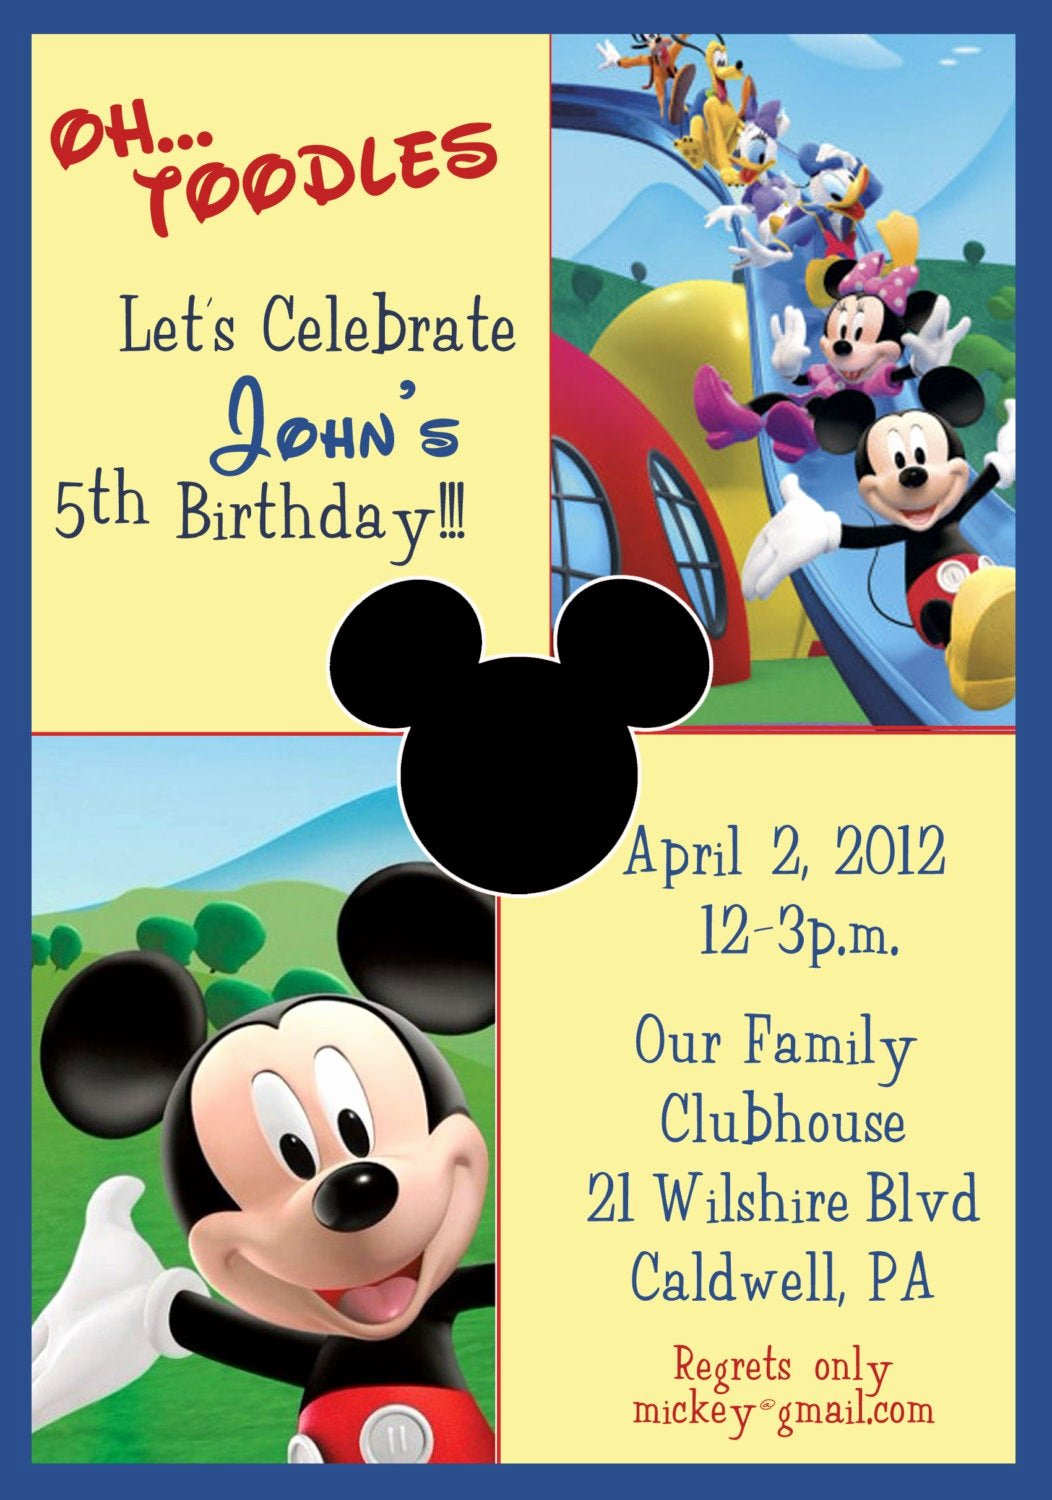 Mickey Mouse Clubhouse Birthday Invitations Elegant Mickey Mouse Clubhouse Birthday Invitations Mickey Mouse